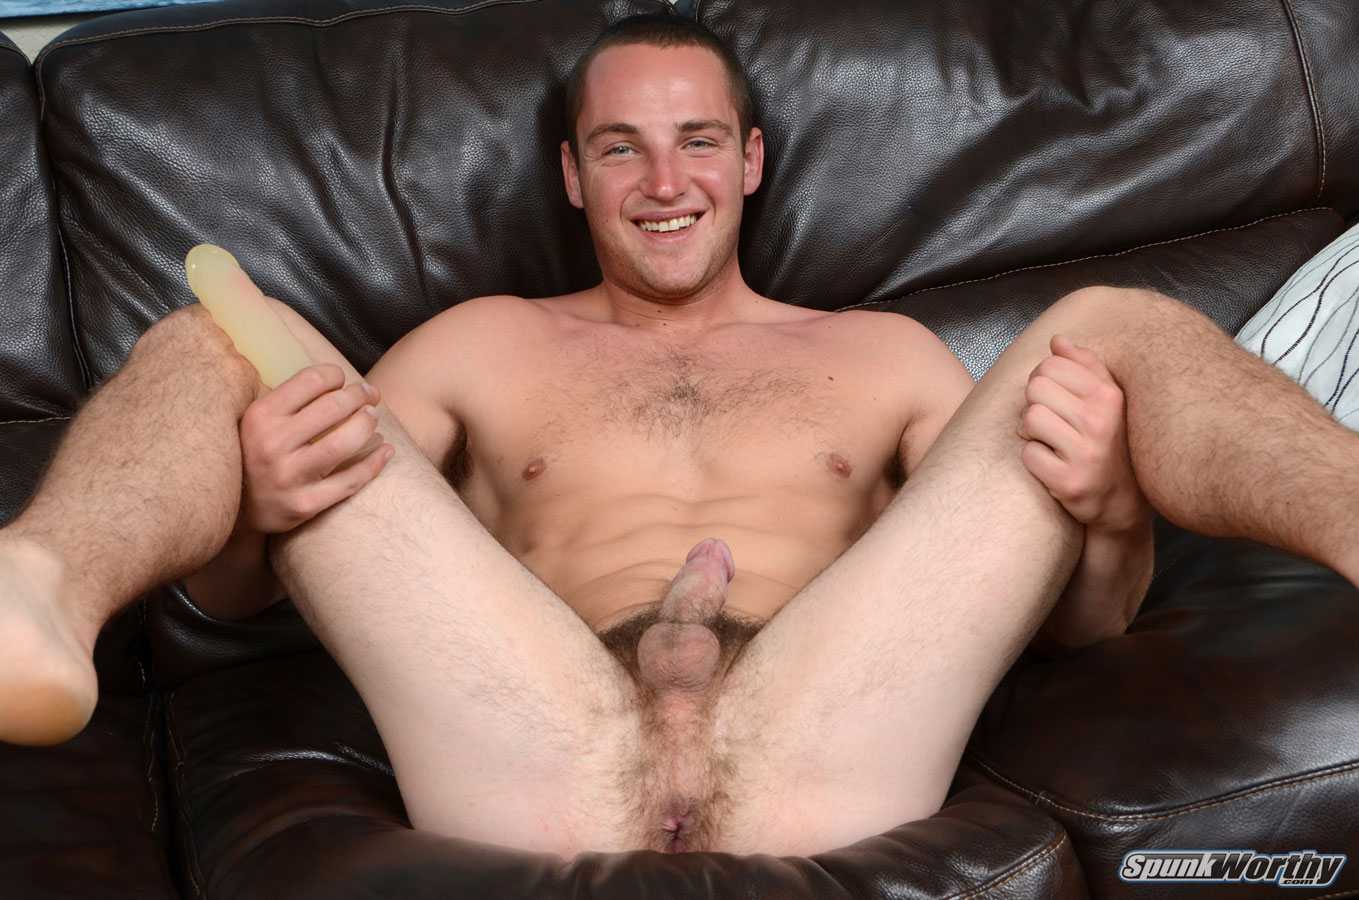 SpunkWorthy-Dean-Straight-Marine-Uses-A-Dildo-On-Hairy-Ass-Amateur-Gay-Porn-04 Ripped Marine Fucks His Striaght Hairy Ass With A Dildo